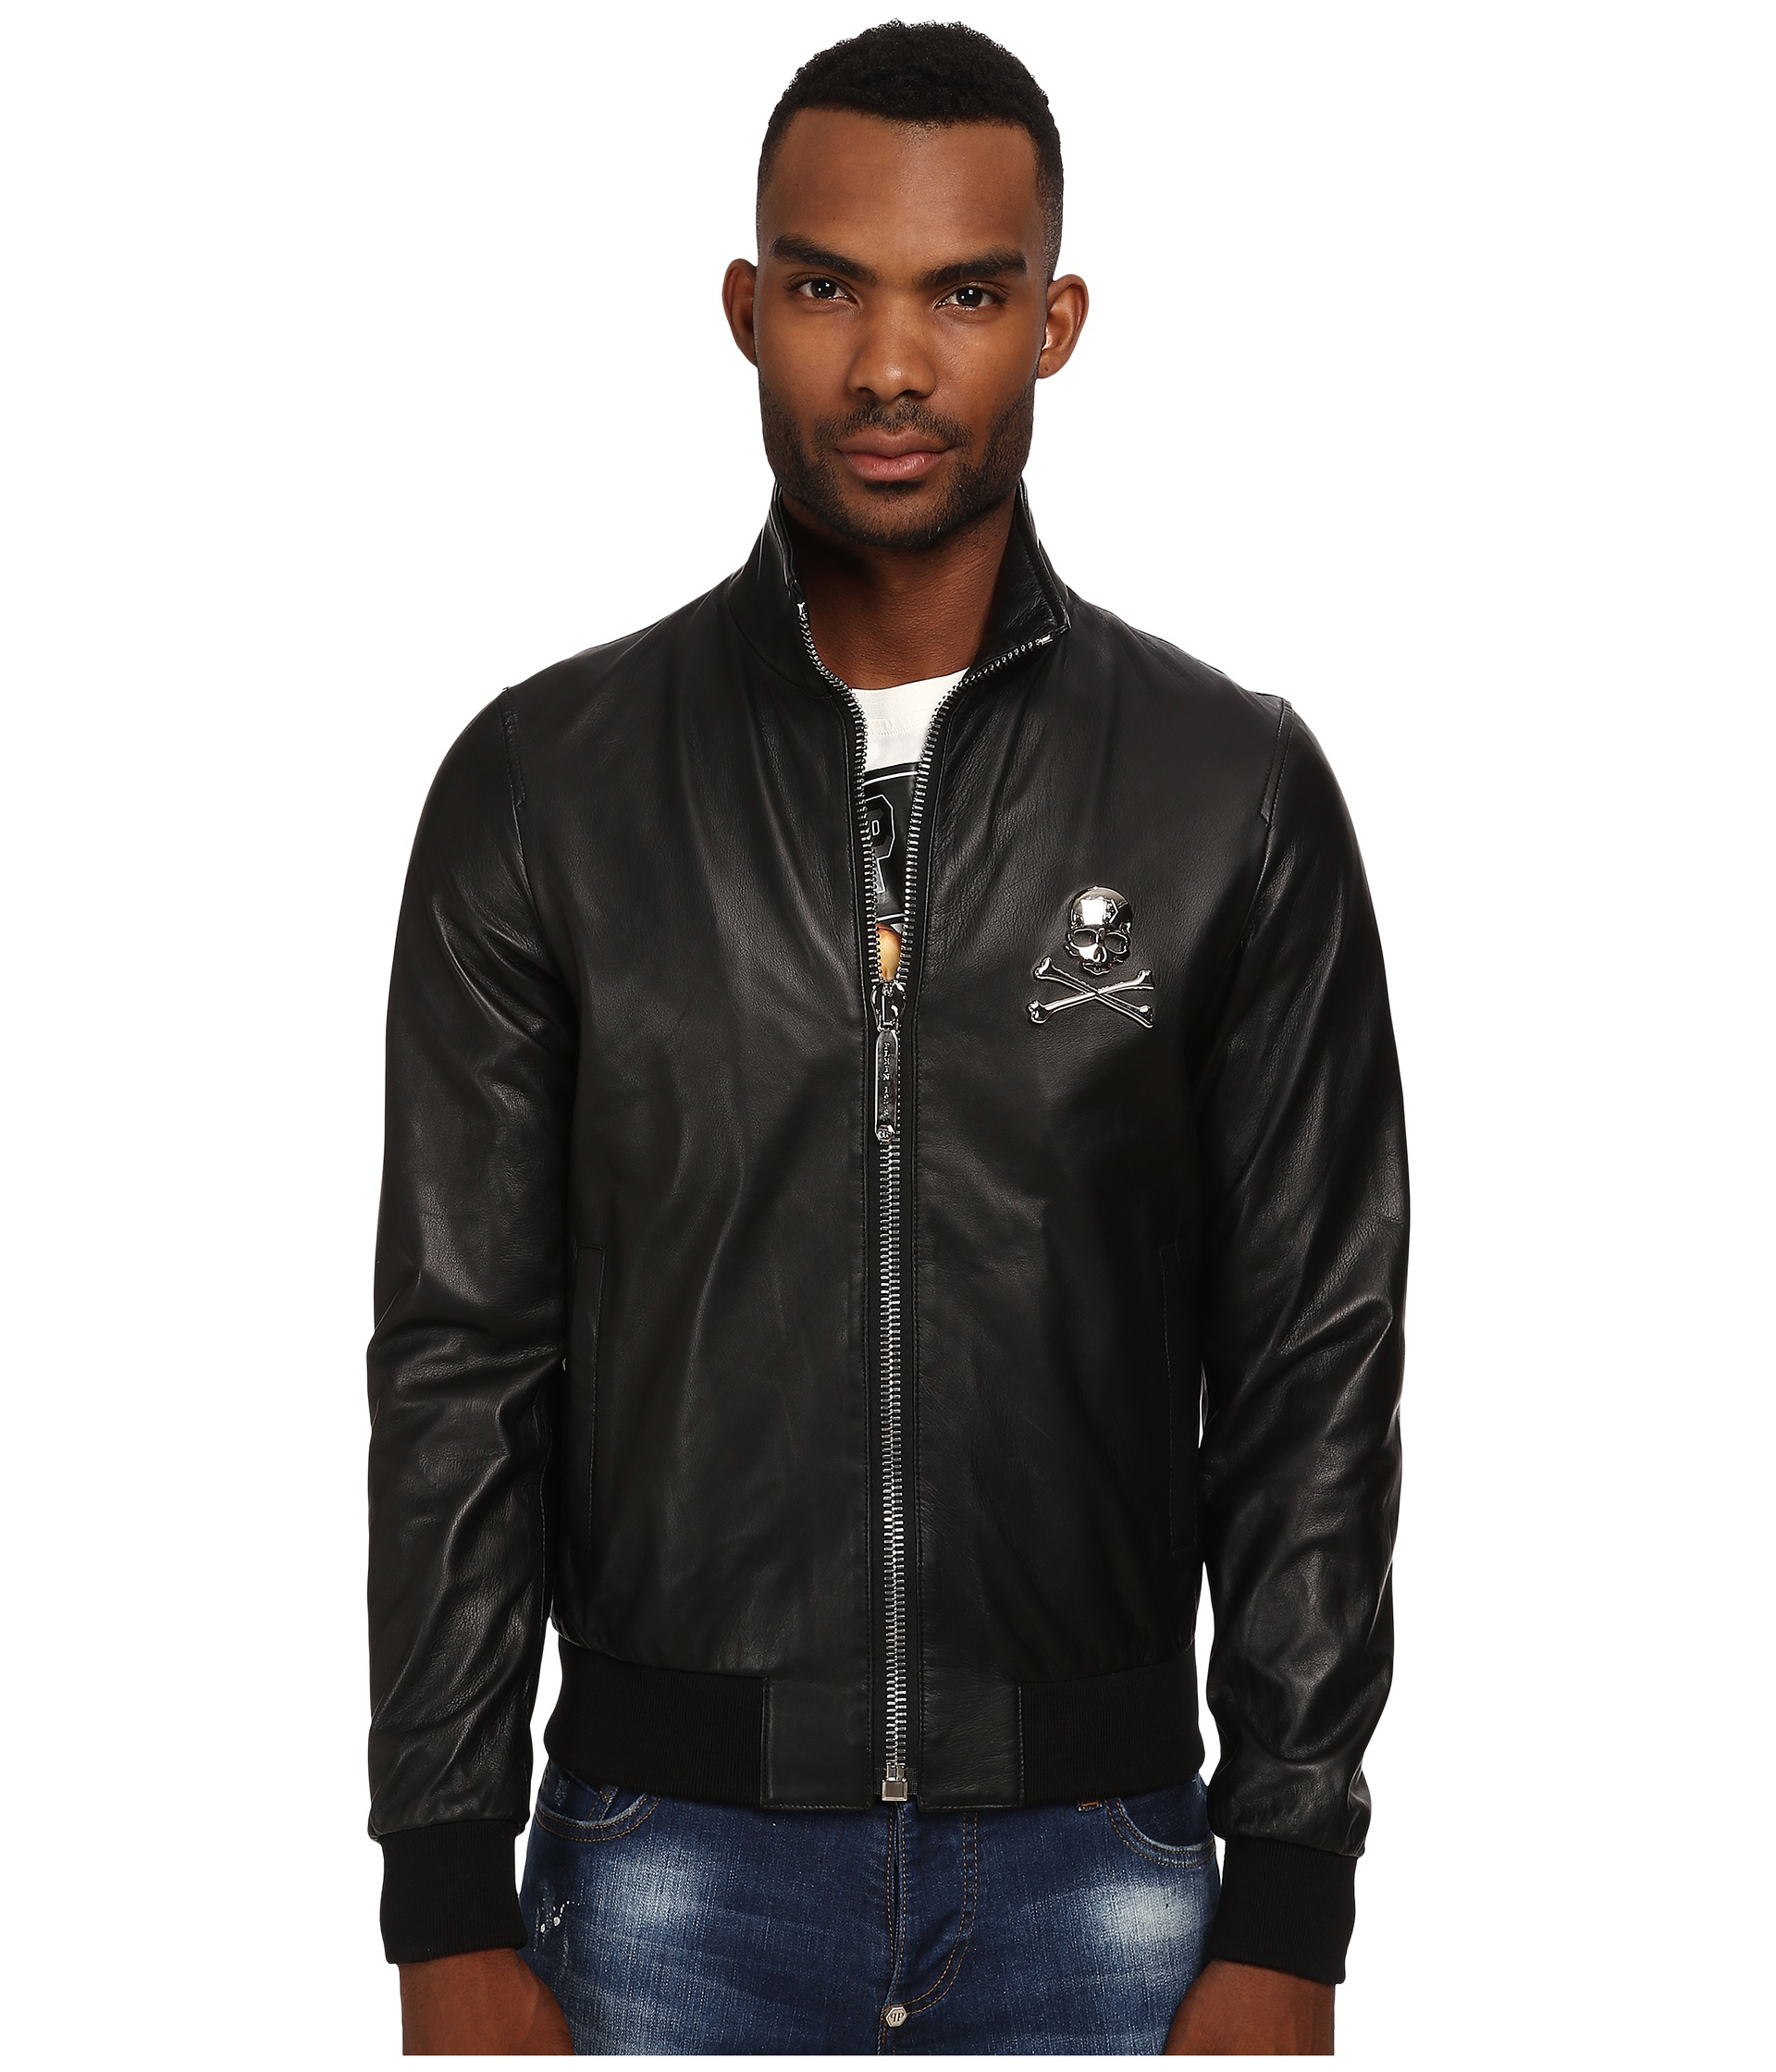 philipp plein stone leather jacket in black for men lyst. Black Bedroom Furniture Sets. Home Design Ideas